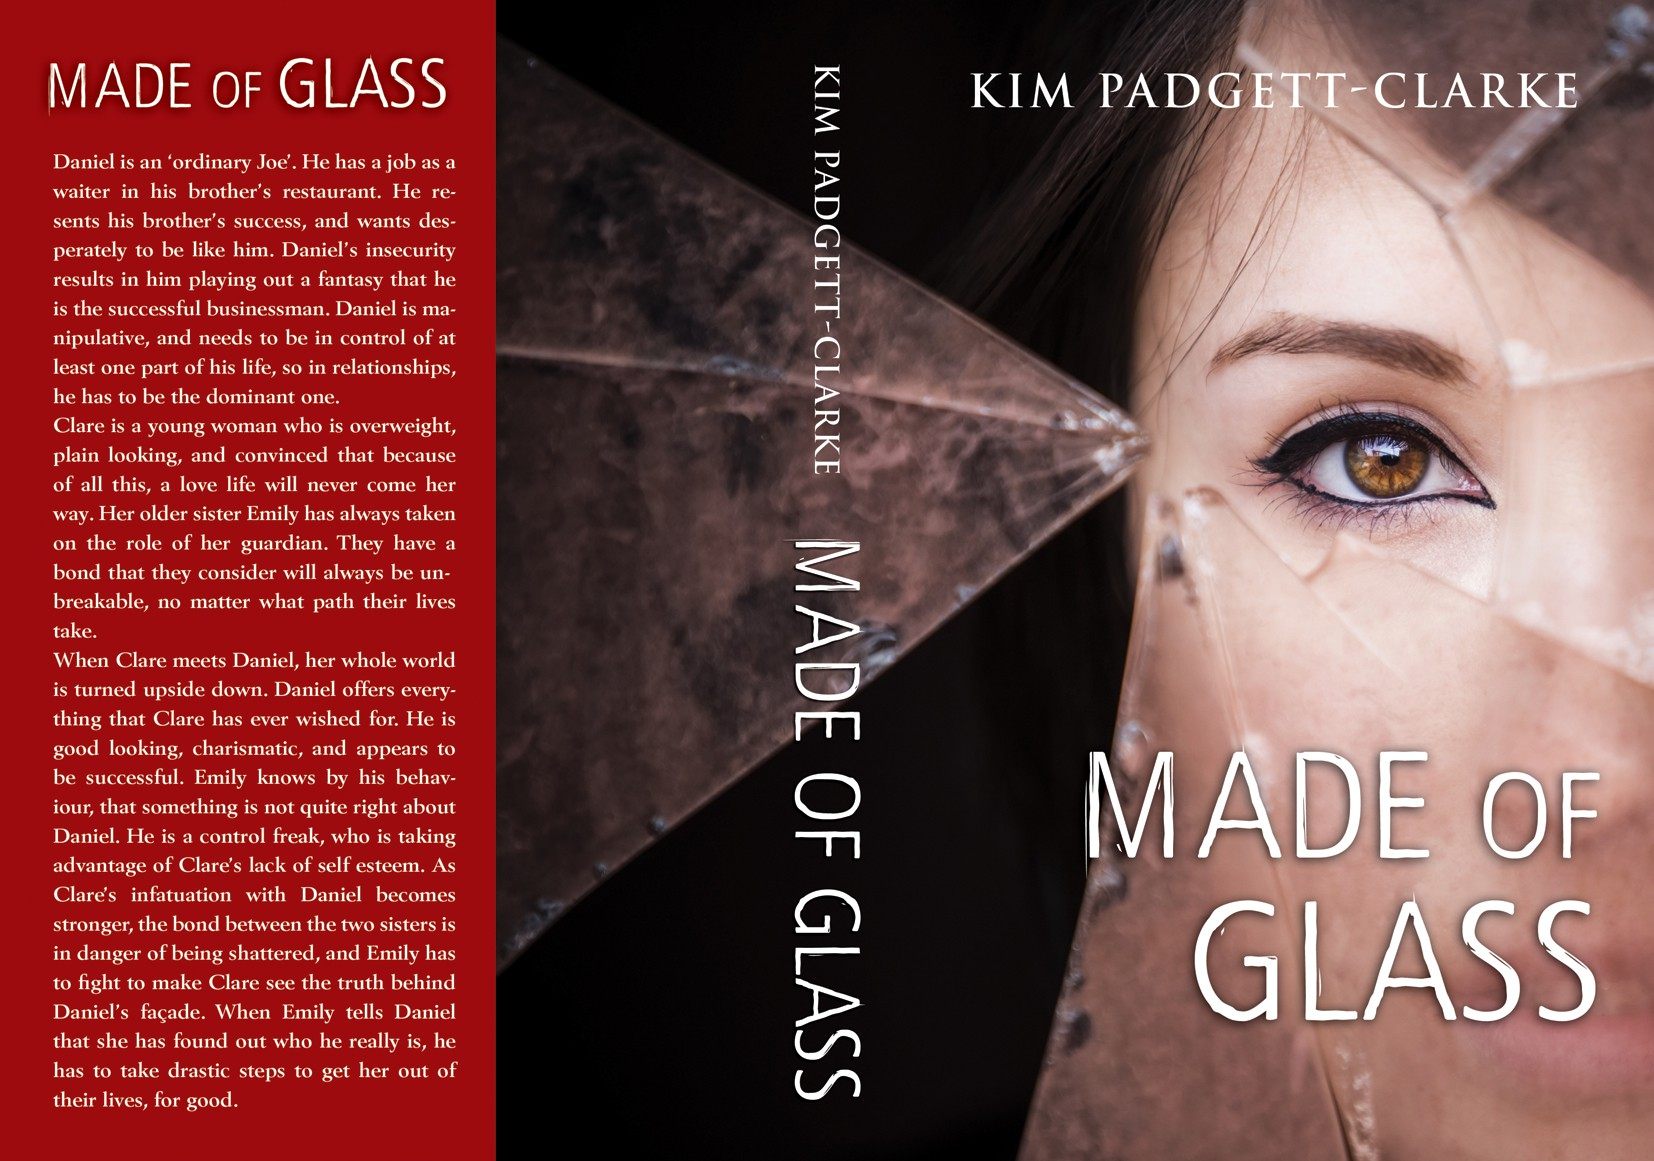 Book cover design for a novel aimed at women